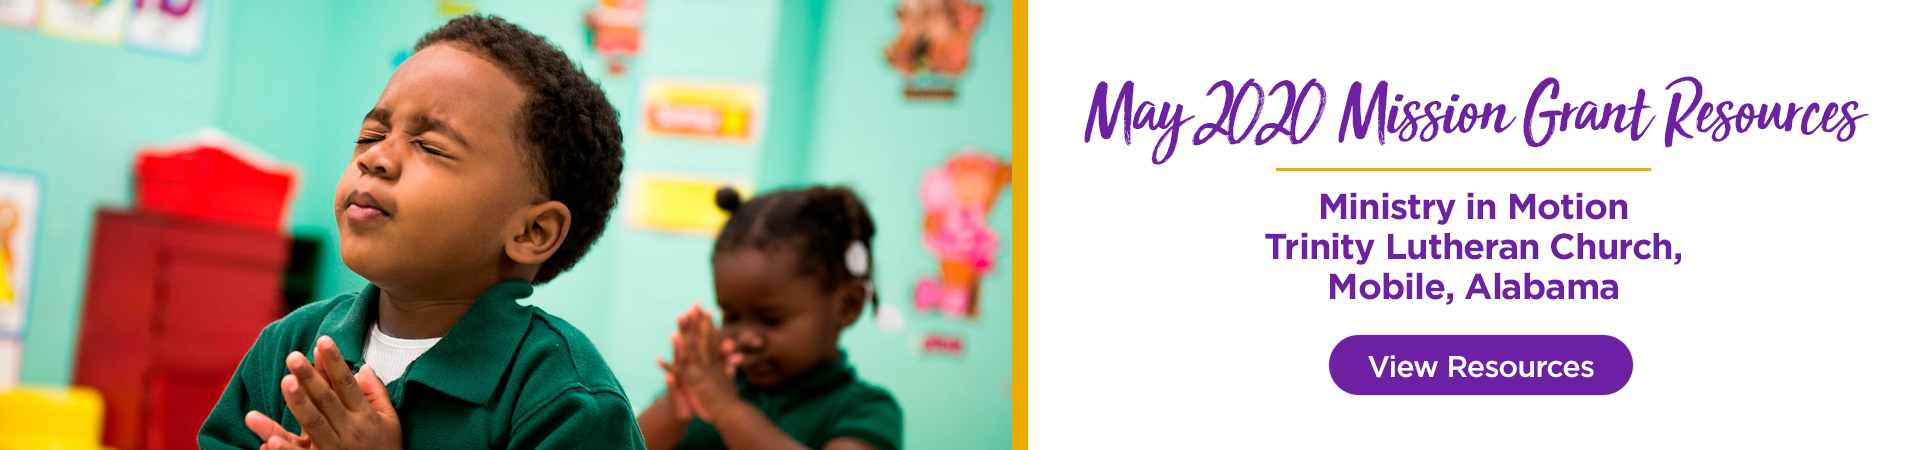 May 2020 Mission Grant Resources are now available for Ministry in Motion — Trinity Lutheran Church, Mobile, Alabama.